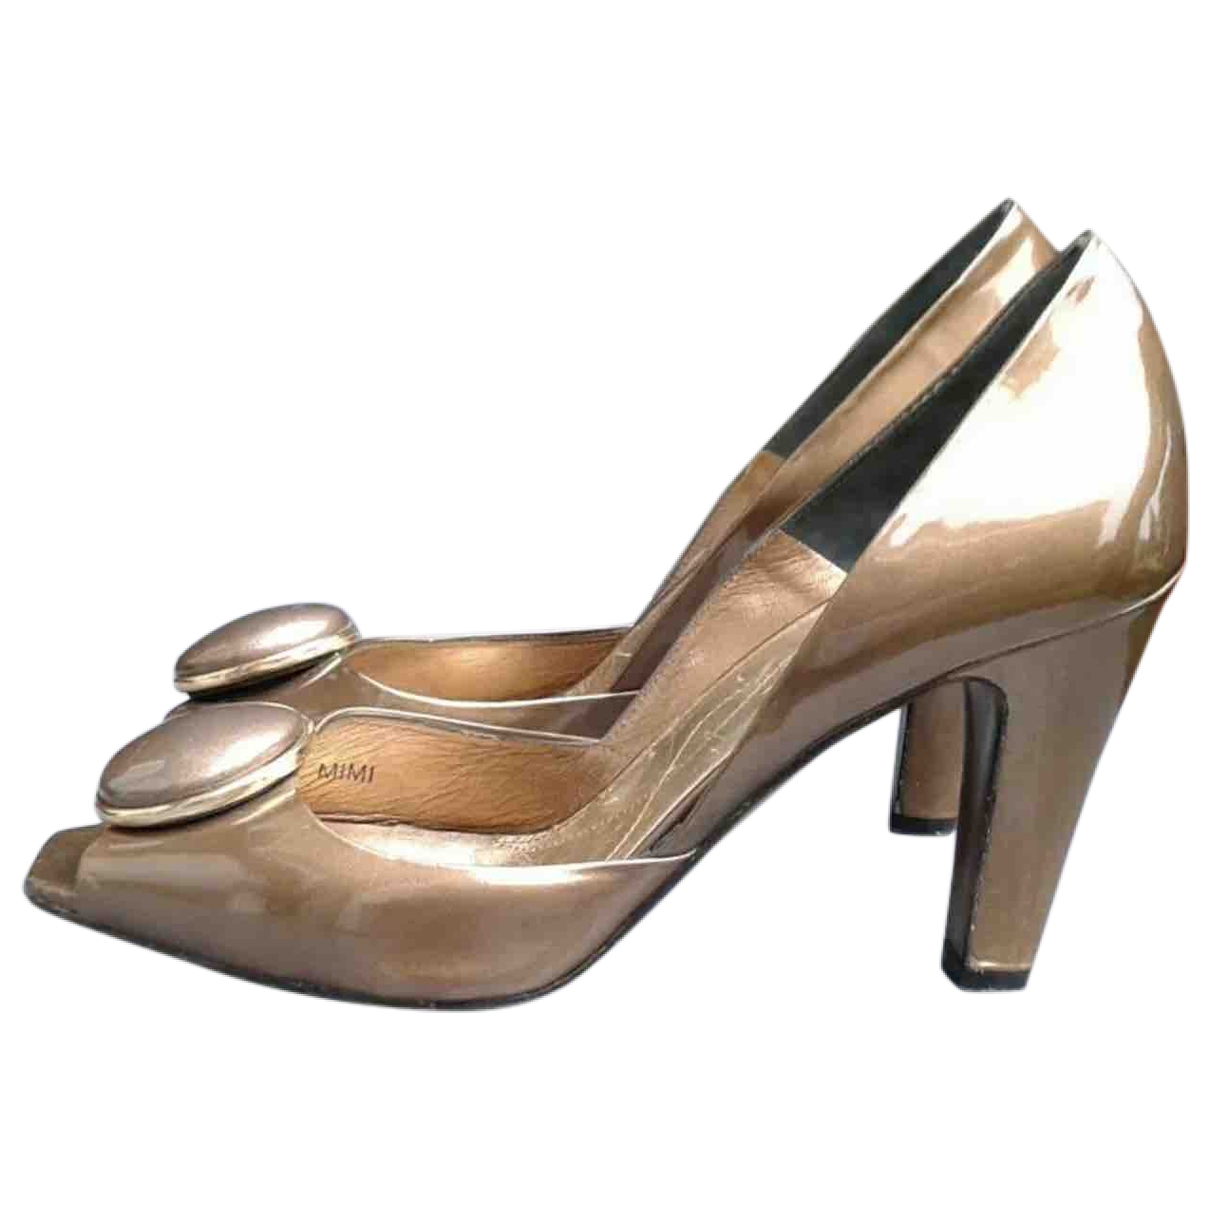 Reiss \N Gold Patent leather Heels for Women 7 UK